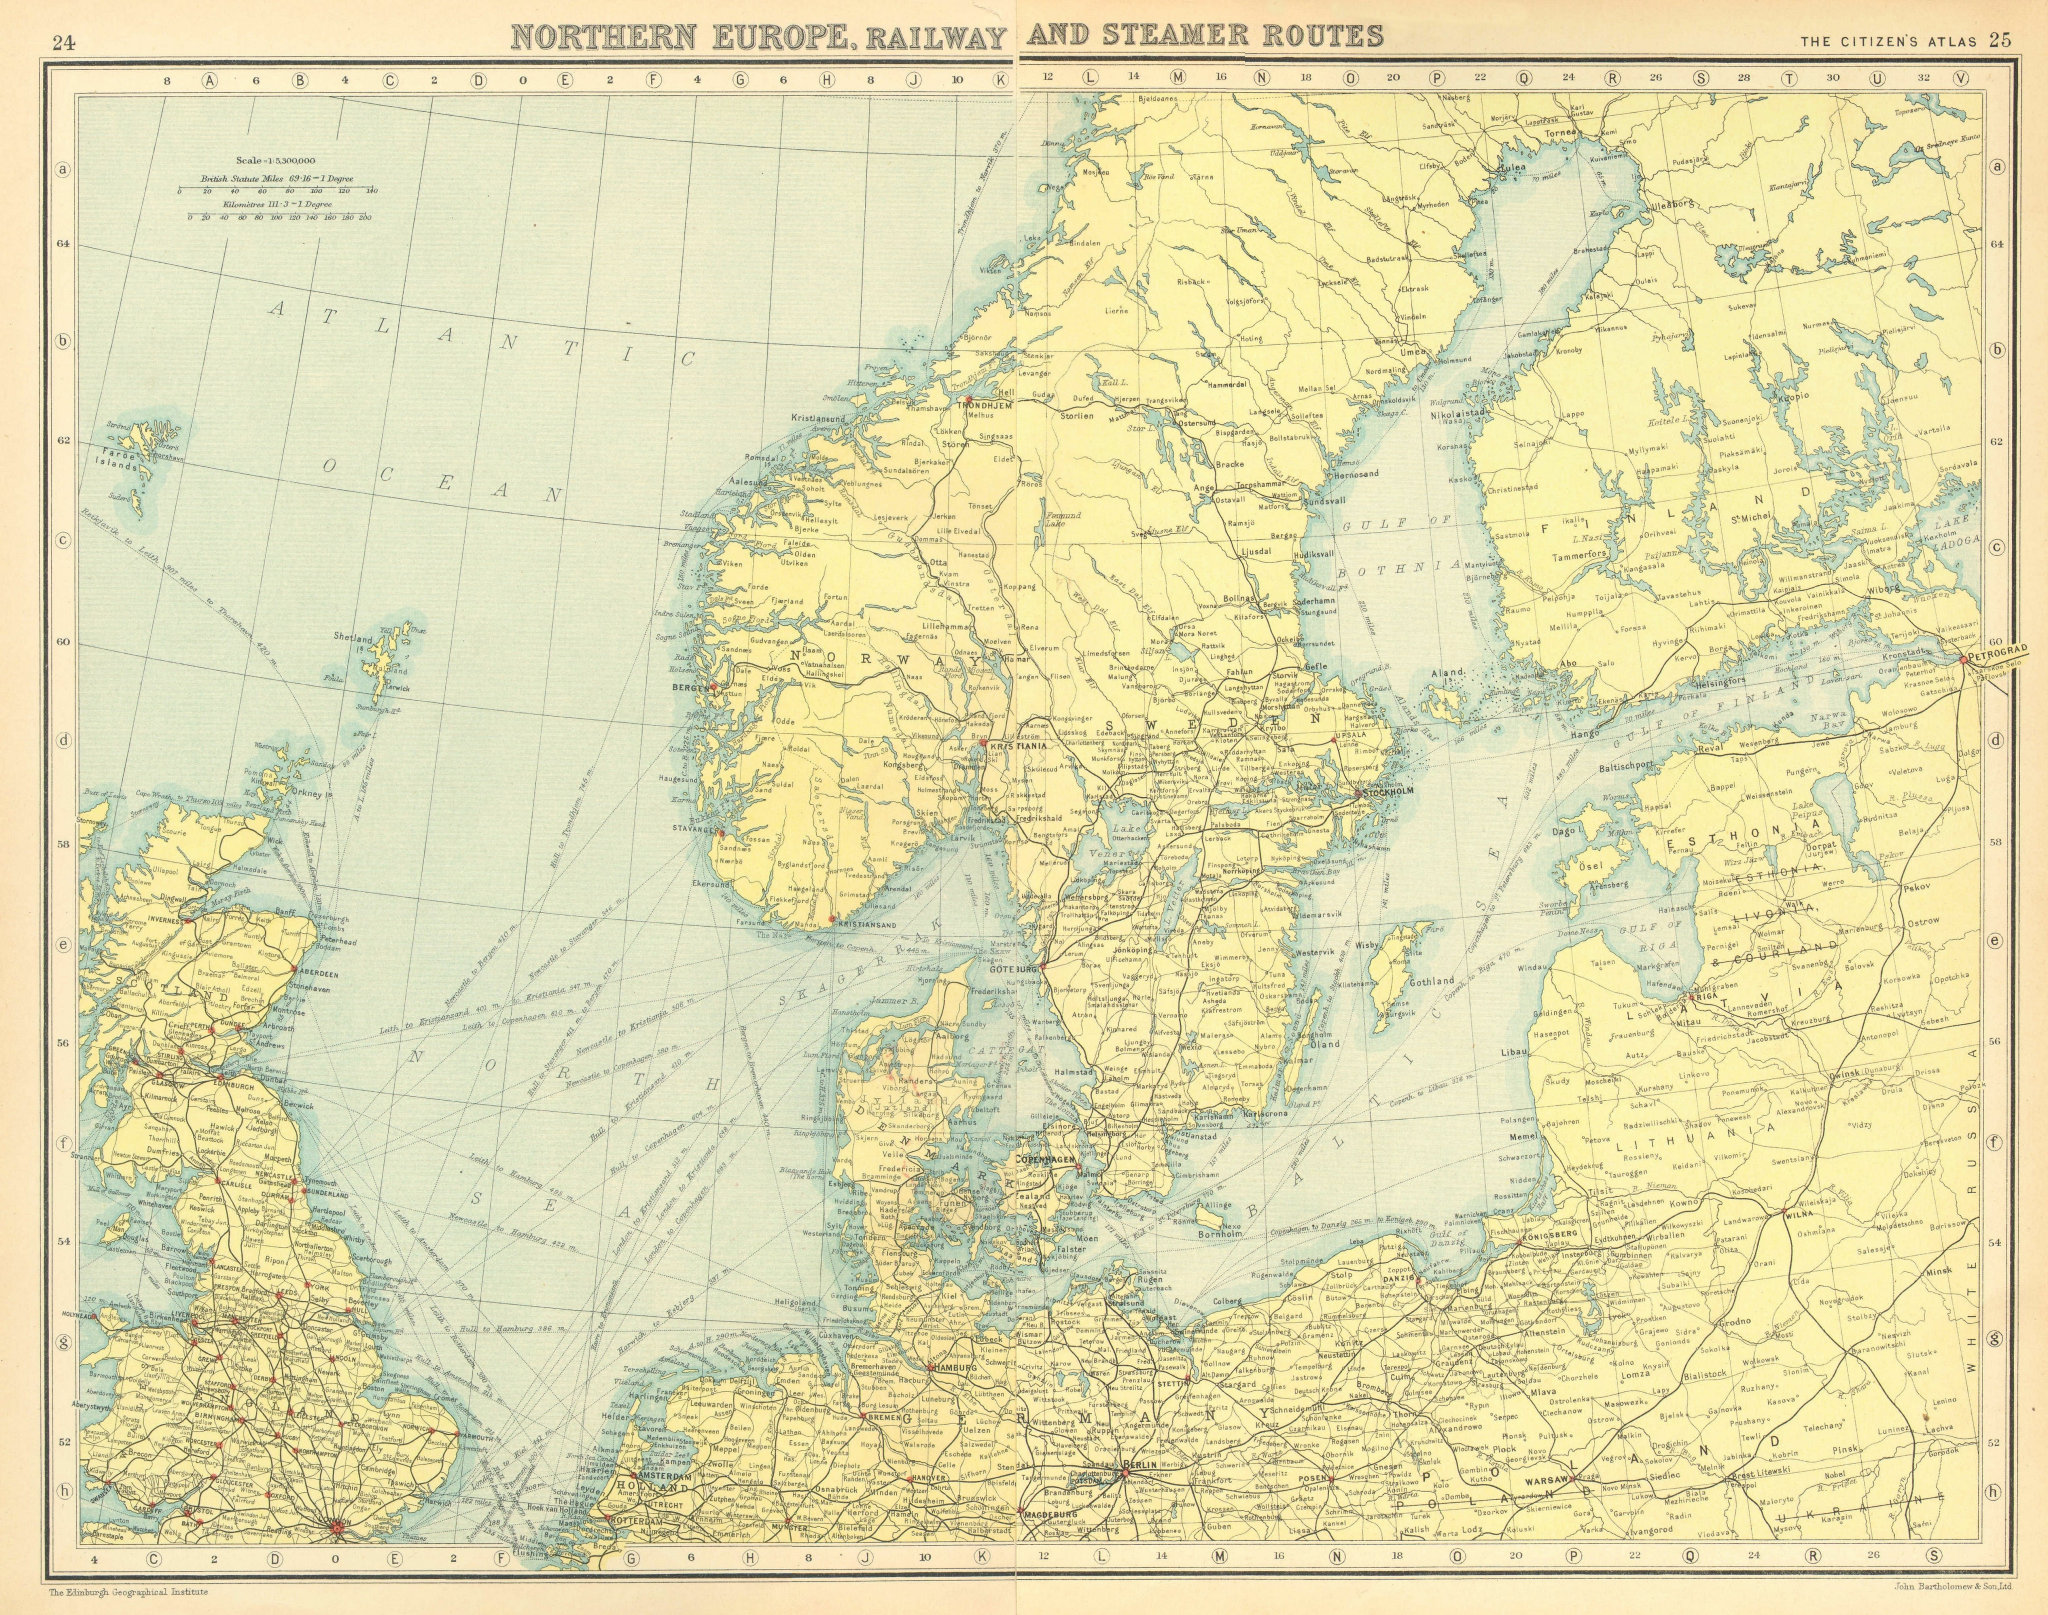 Associate Product NORTHERN EUROPE. Railway and Steamer Routes. BARTHOLOMEW 1924 old vintage map